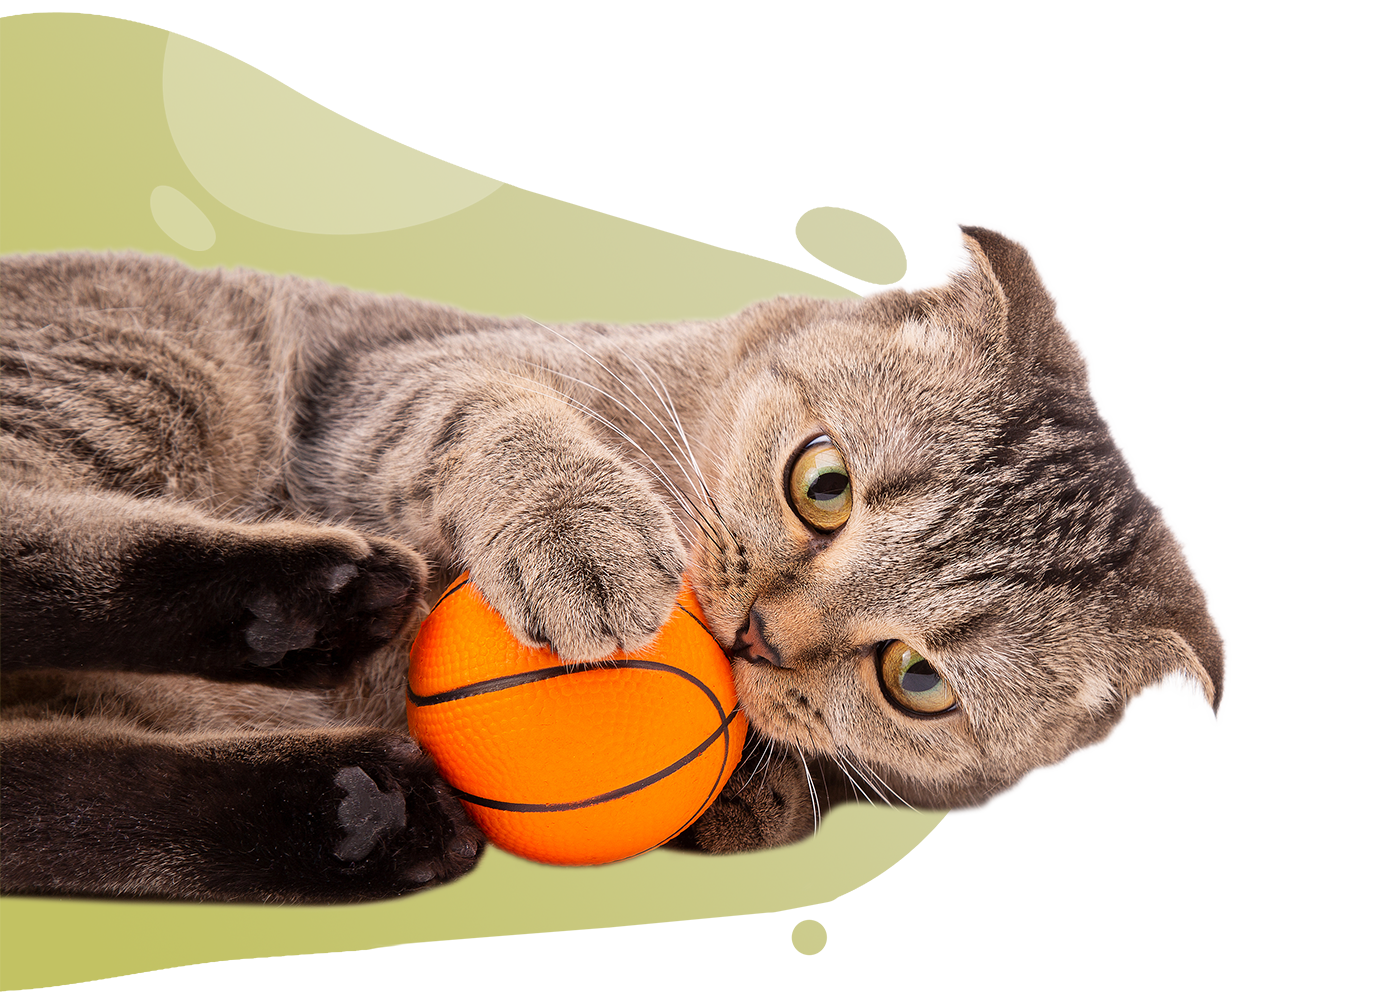 https://www.thecatclinic.sg/wp-content/uploads/bigstock-The-Cat-Plays-With-The-Ball-B-354032939.png